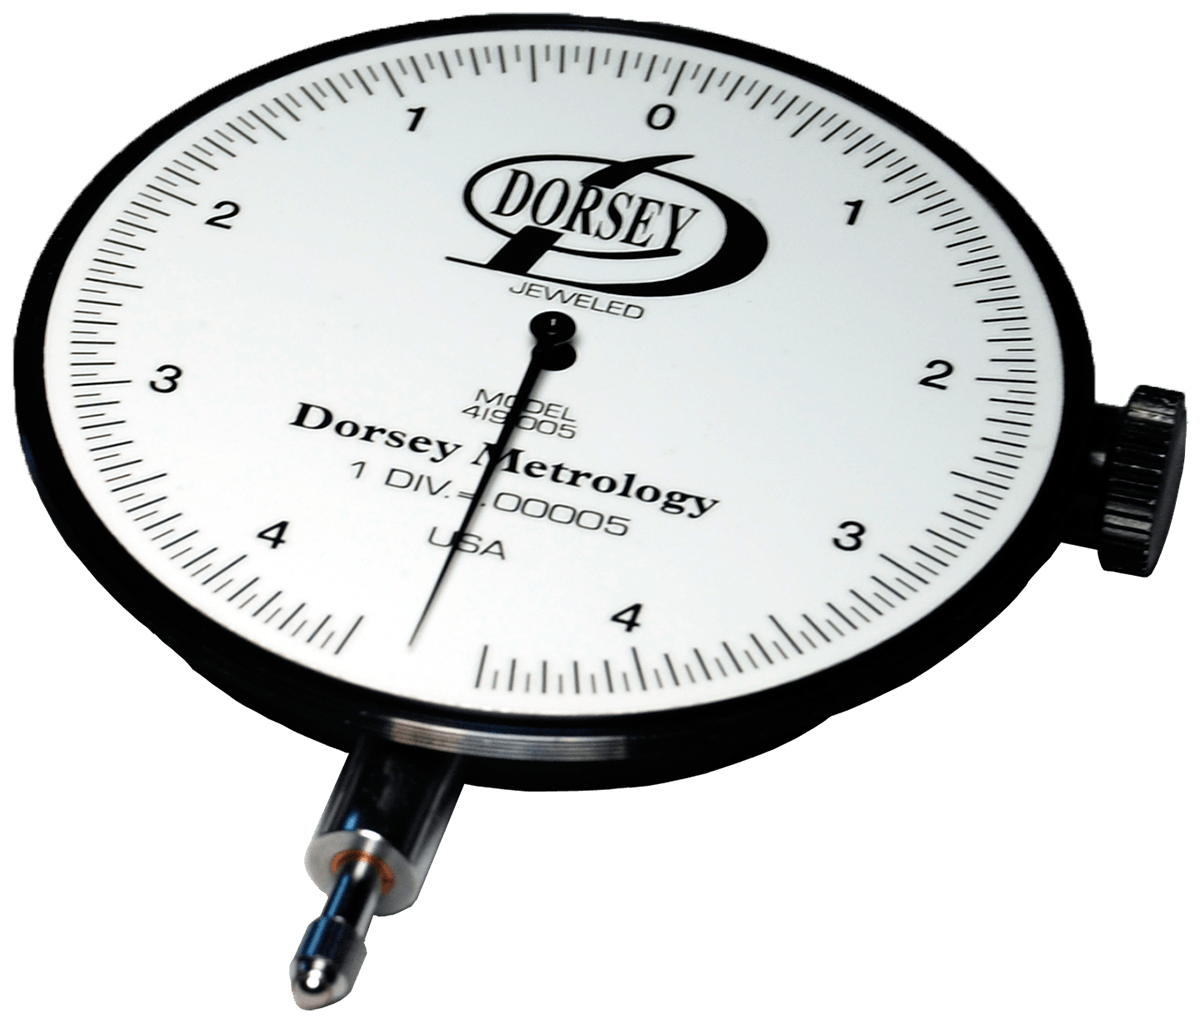 4I9-005 High Amplification Dial Indicator